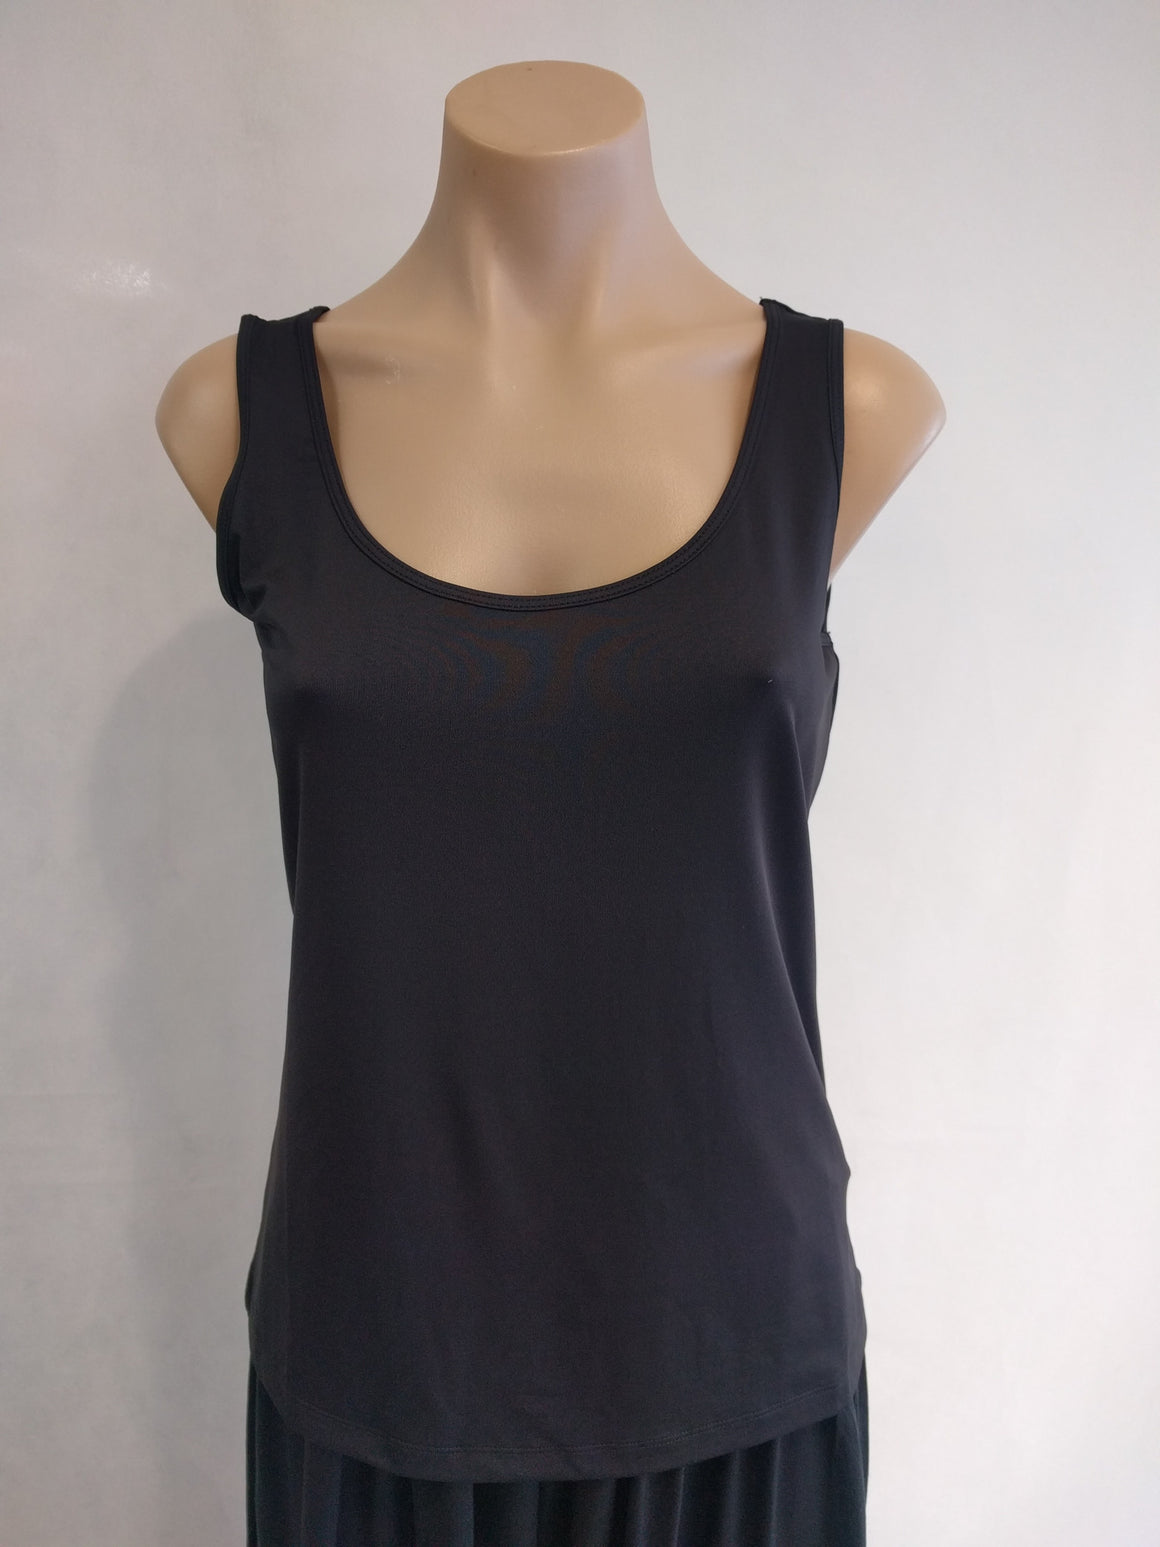 Matisse Layering Singlet Top - Fashion Focus